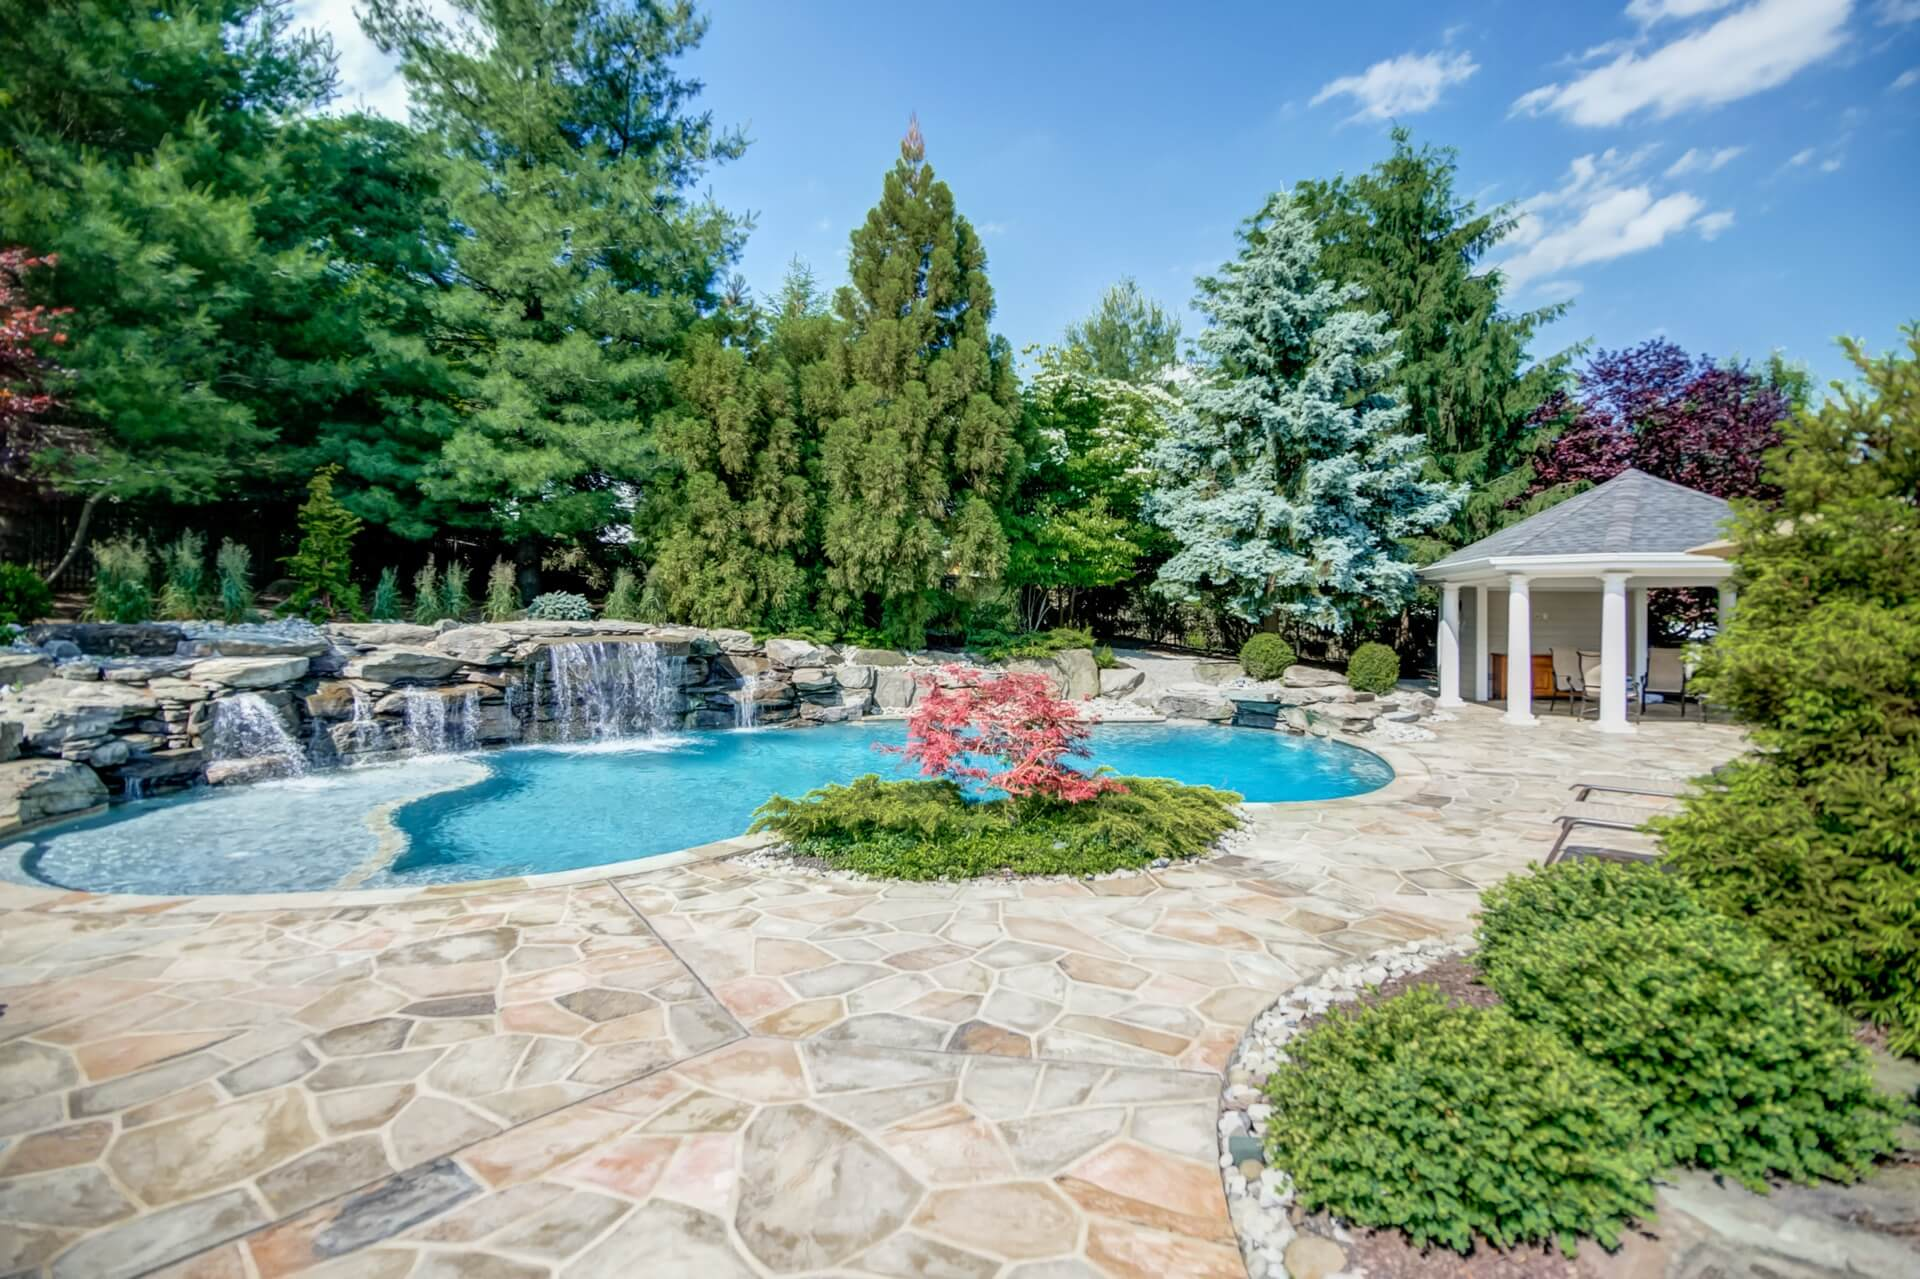 Pool with waterfalls and beautiful stone deck